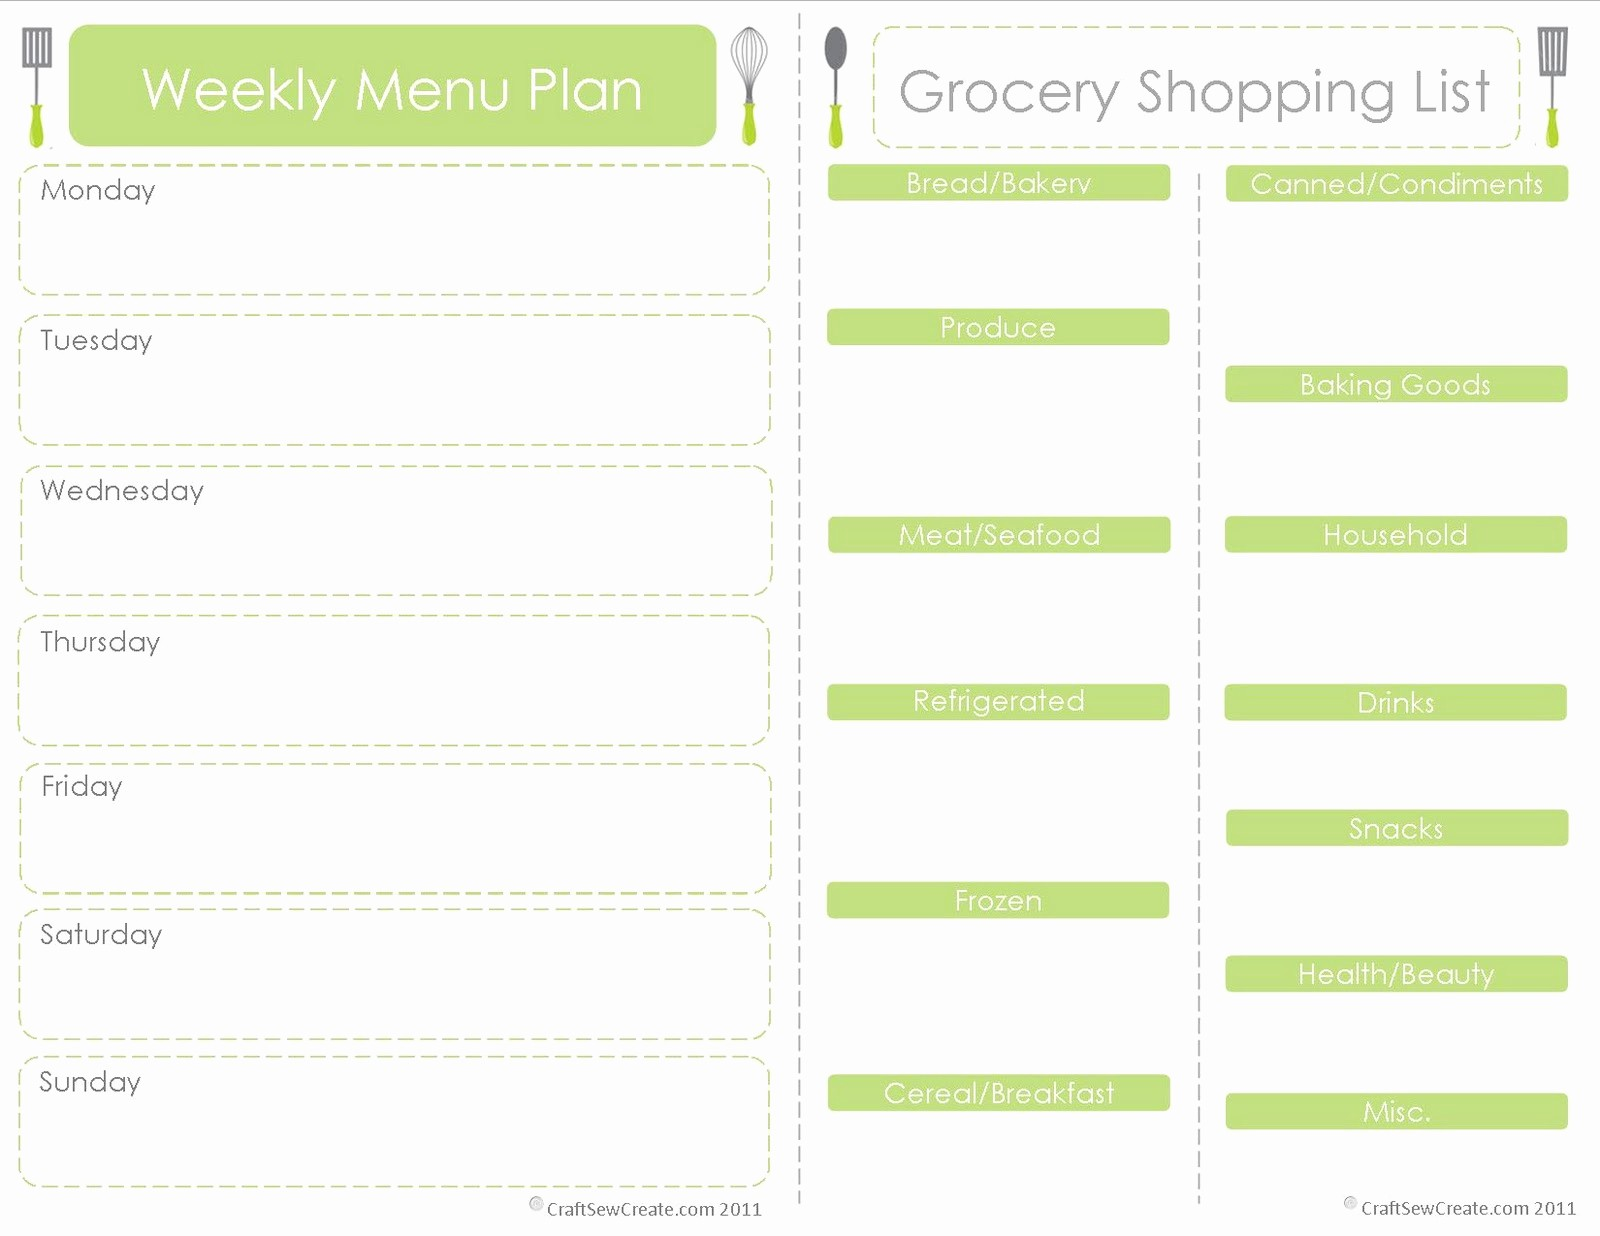 Free Meal Planner Template Download Elegant Craft Sew Create Free Printable Menu Plan Shopping List